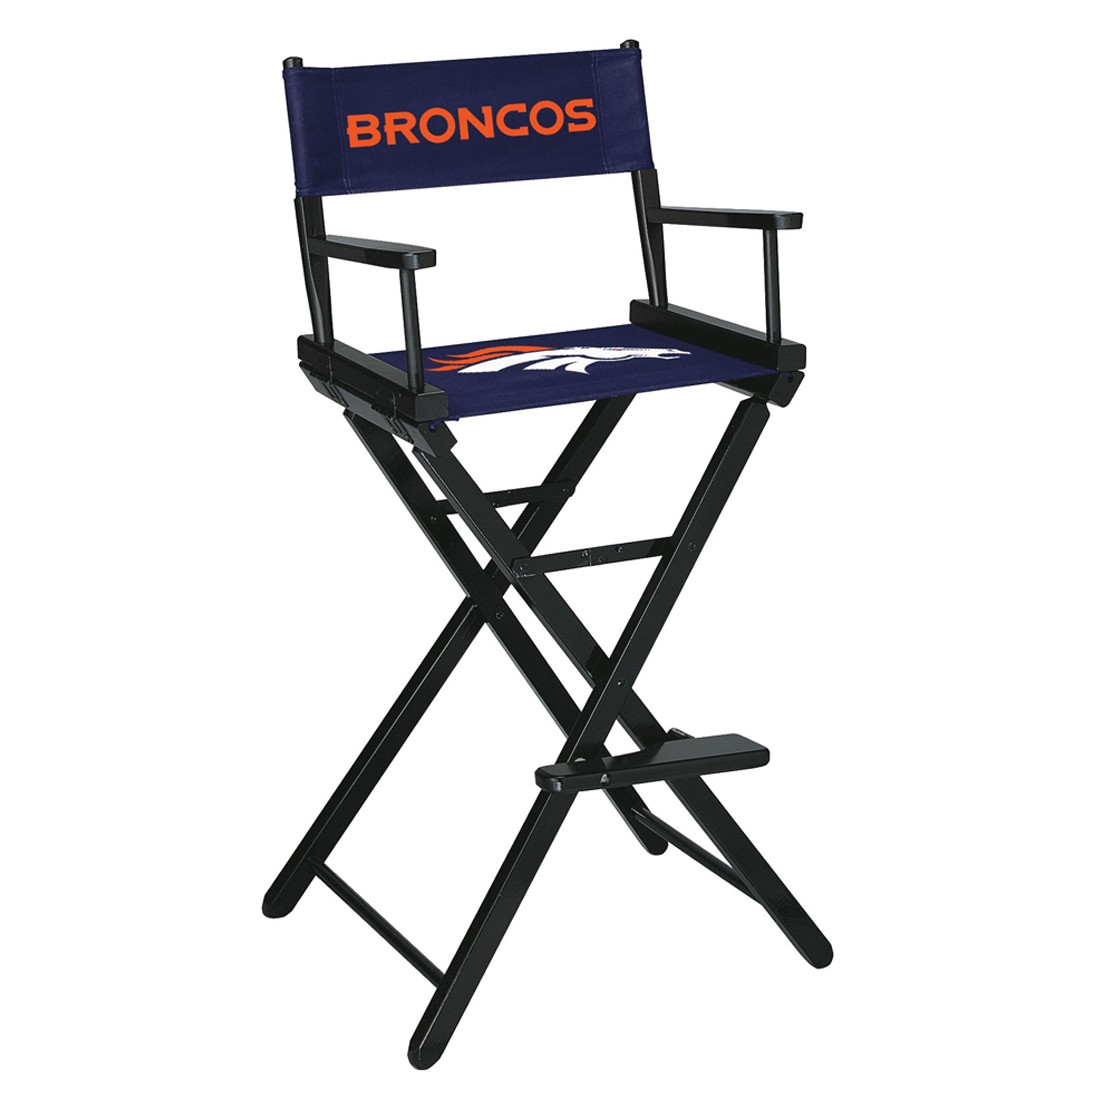 DENVER BRONCOS BAR HEIGHT DIRECTORS CHAIR